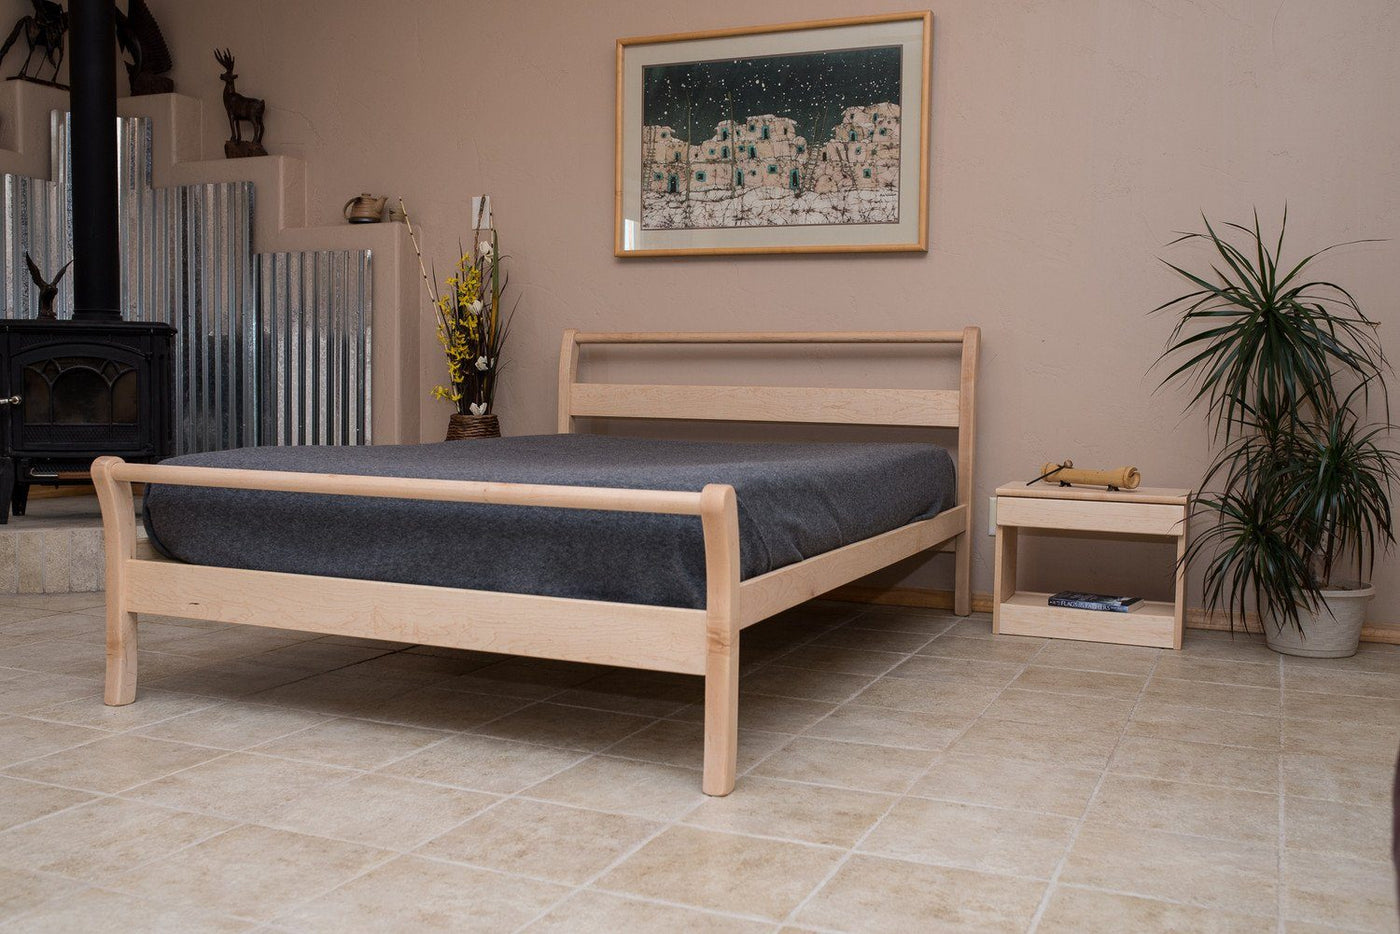 frame king silver velvet crushed dp buttons size uk co bed super sleigh kitchen home upholstered amazon with diamond